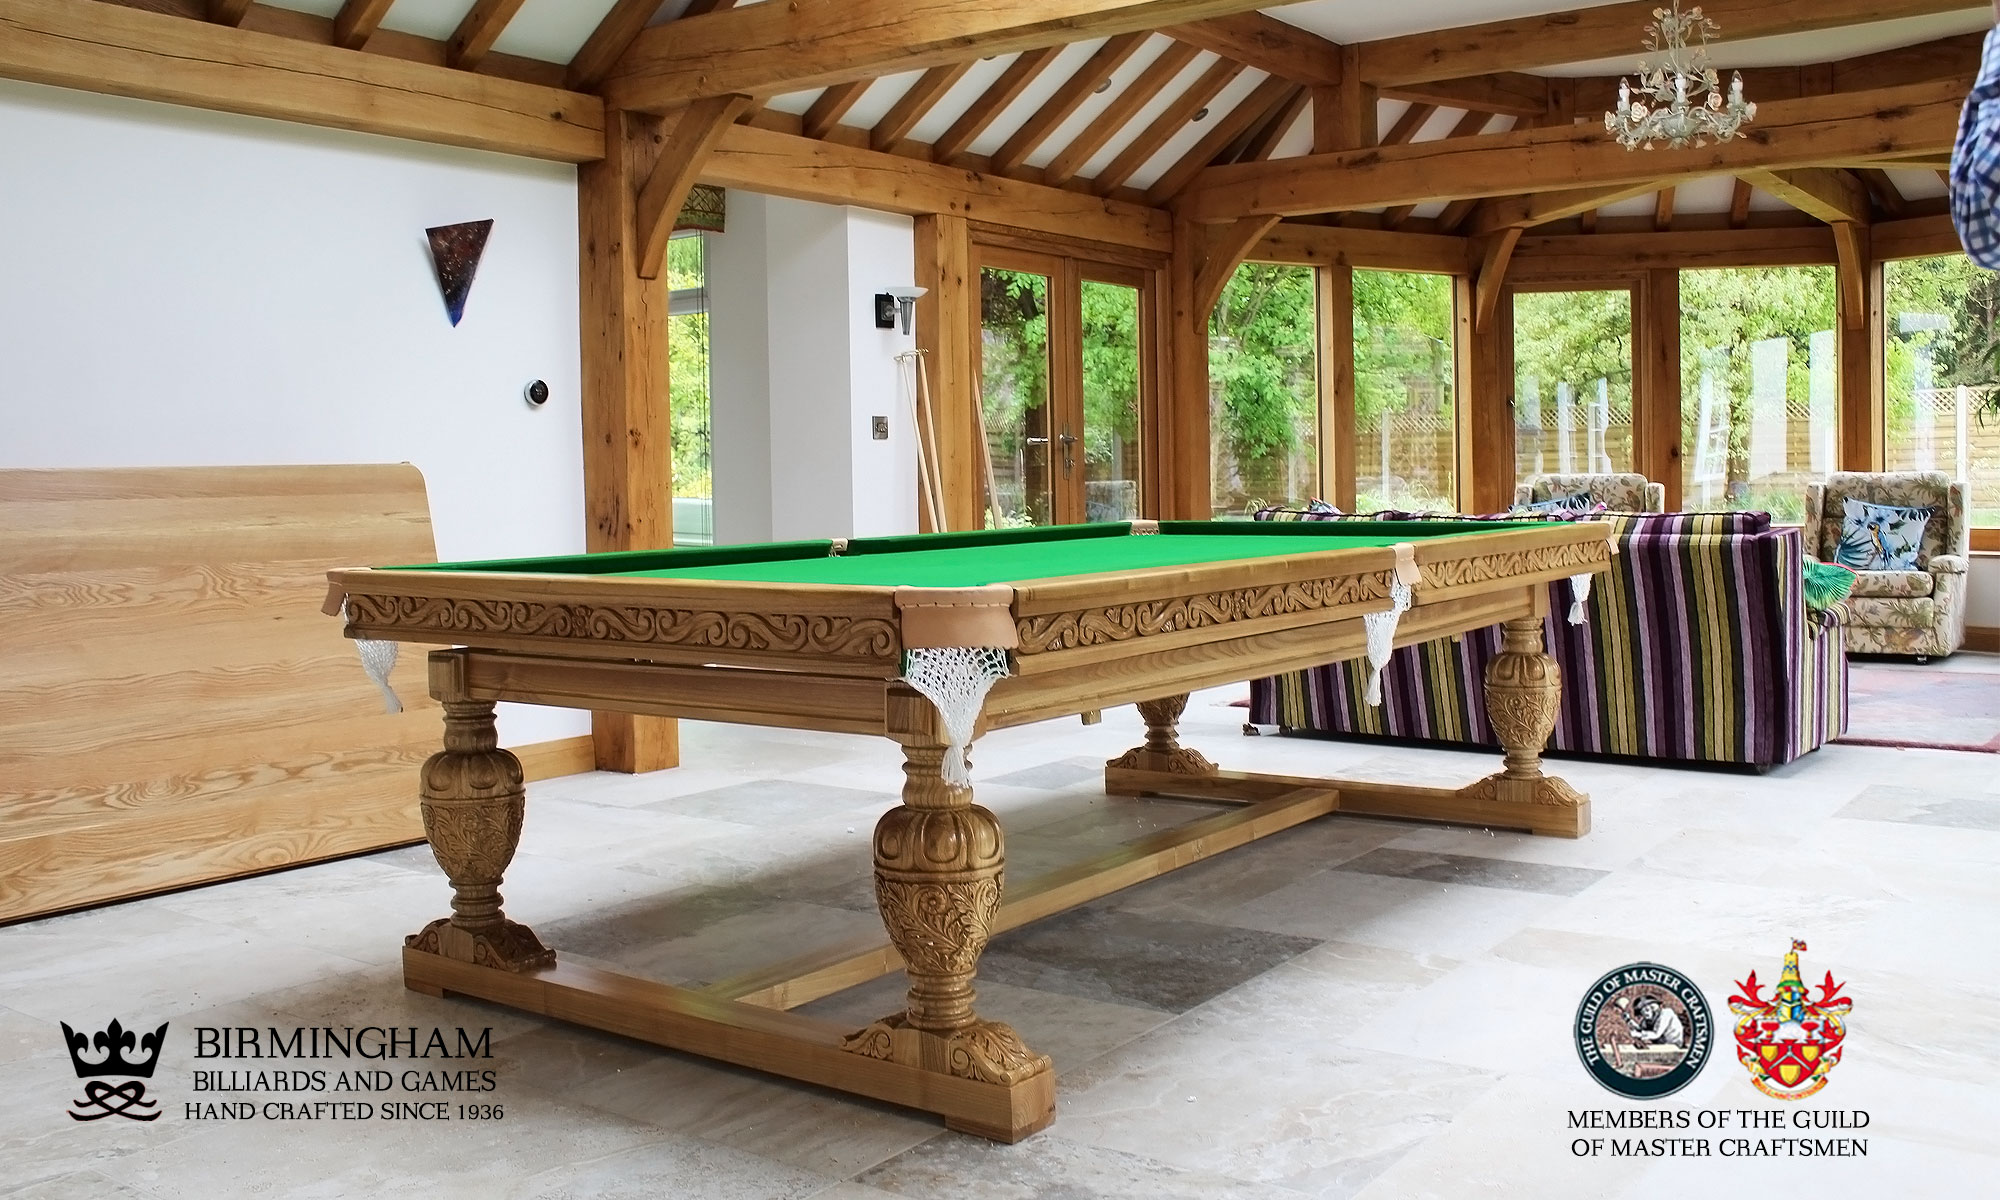 The Balmoral-hand carved pool table, championship green baize